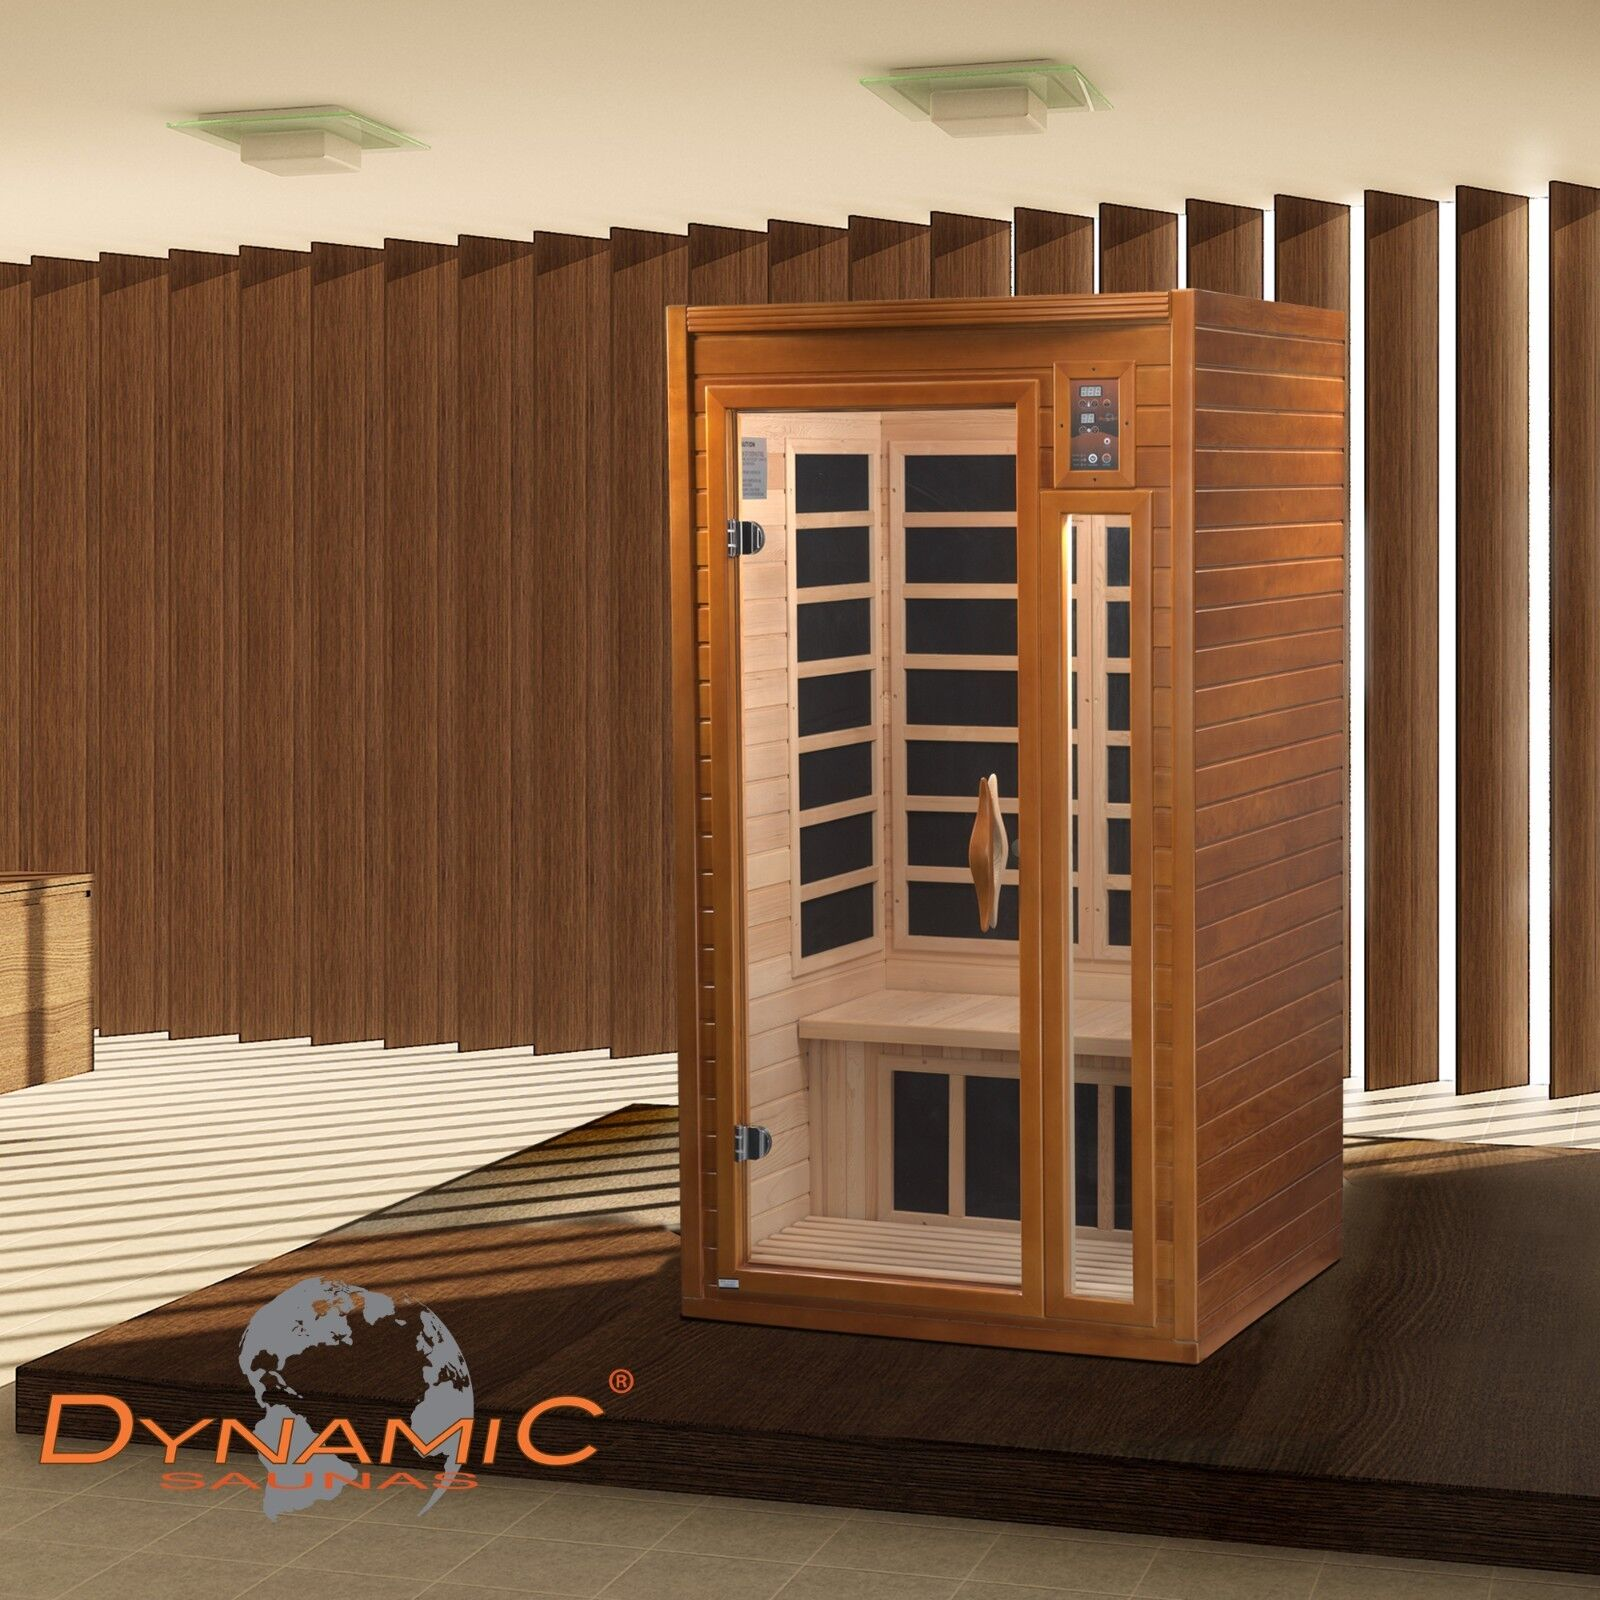 Dynamic 3 Person Low Emf Far Infrared Sauna Modena Edition 9 Carbon Heaters For Sale Online Ebay